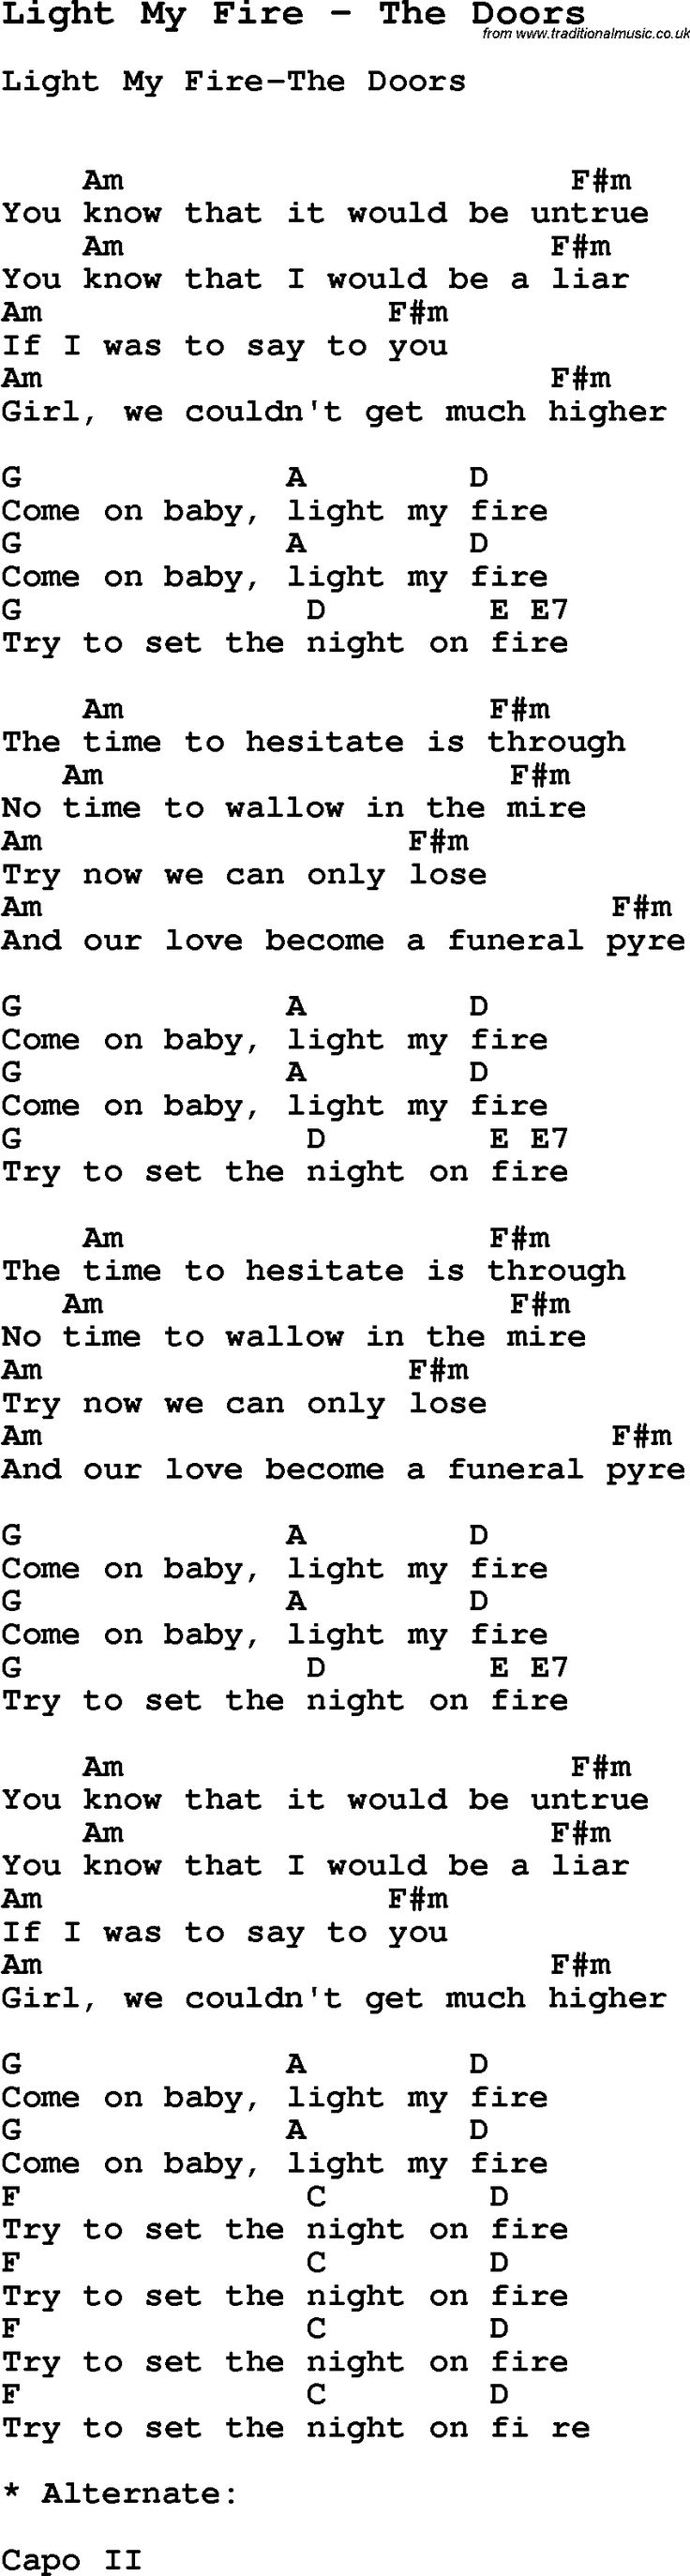 Song Light My Fire by The Doors, with lyrics for vocal performance and accompaniment chords for Ukulele, Guitar Banjo etc.